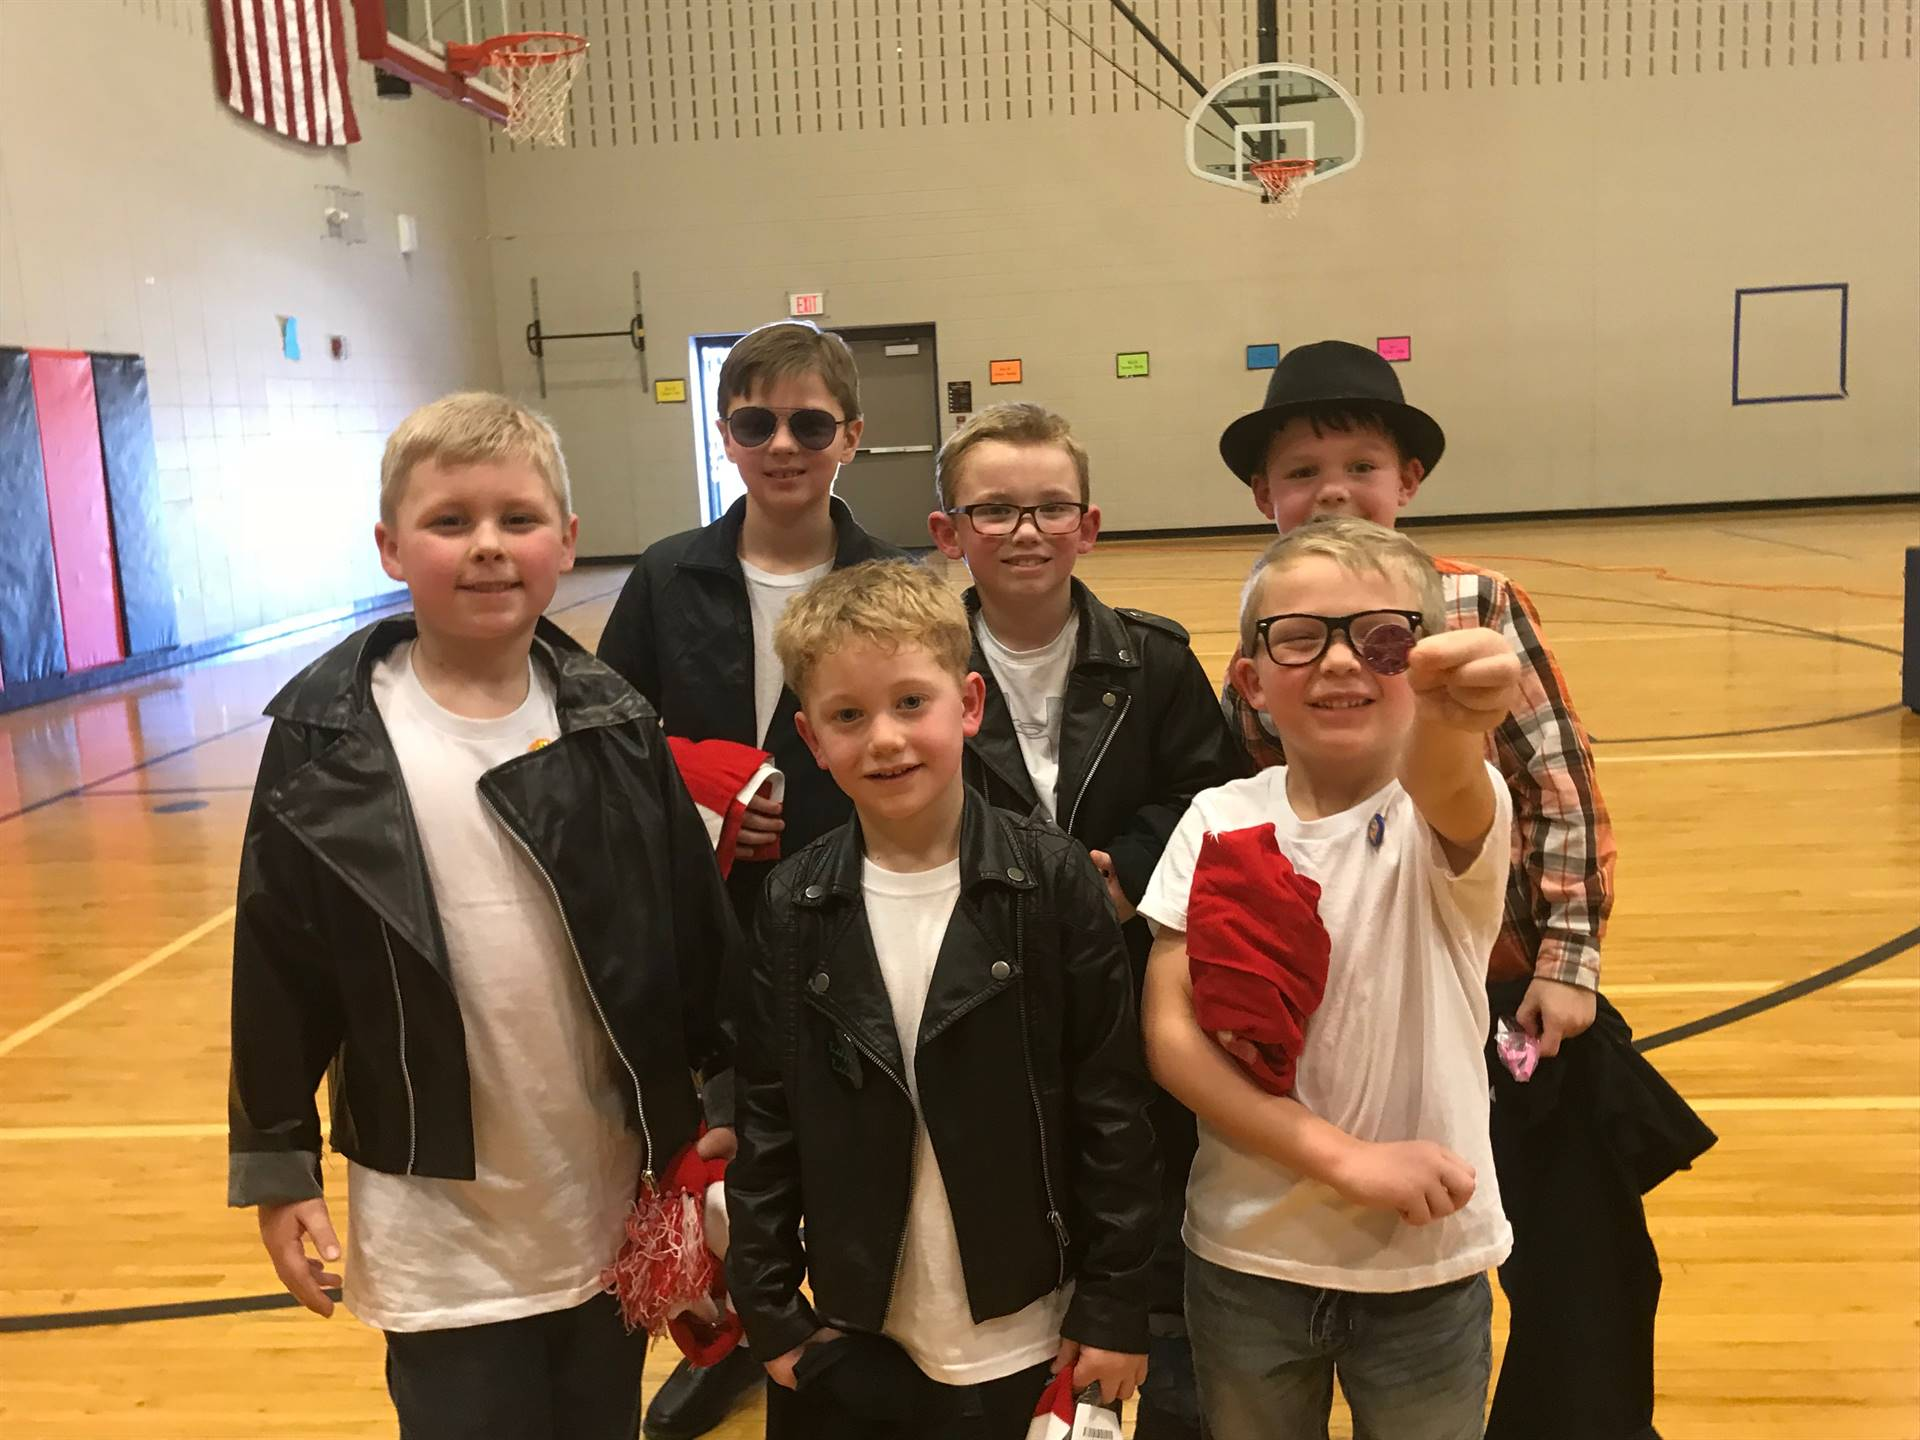 Elementary students dressed in 1950's clothing